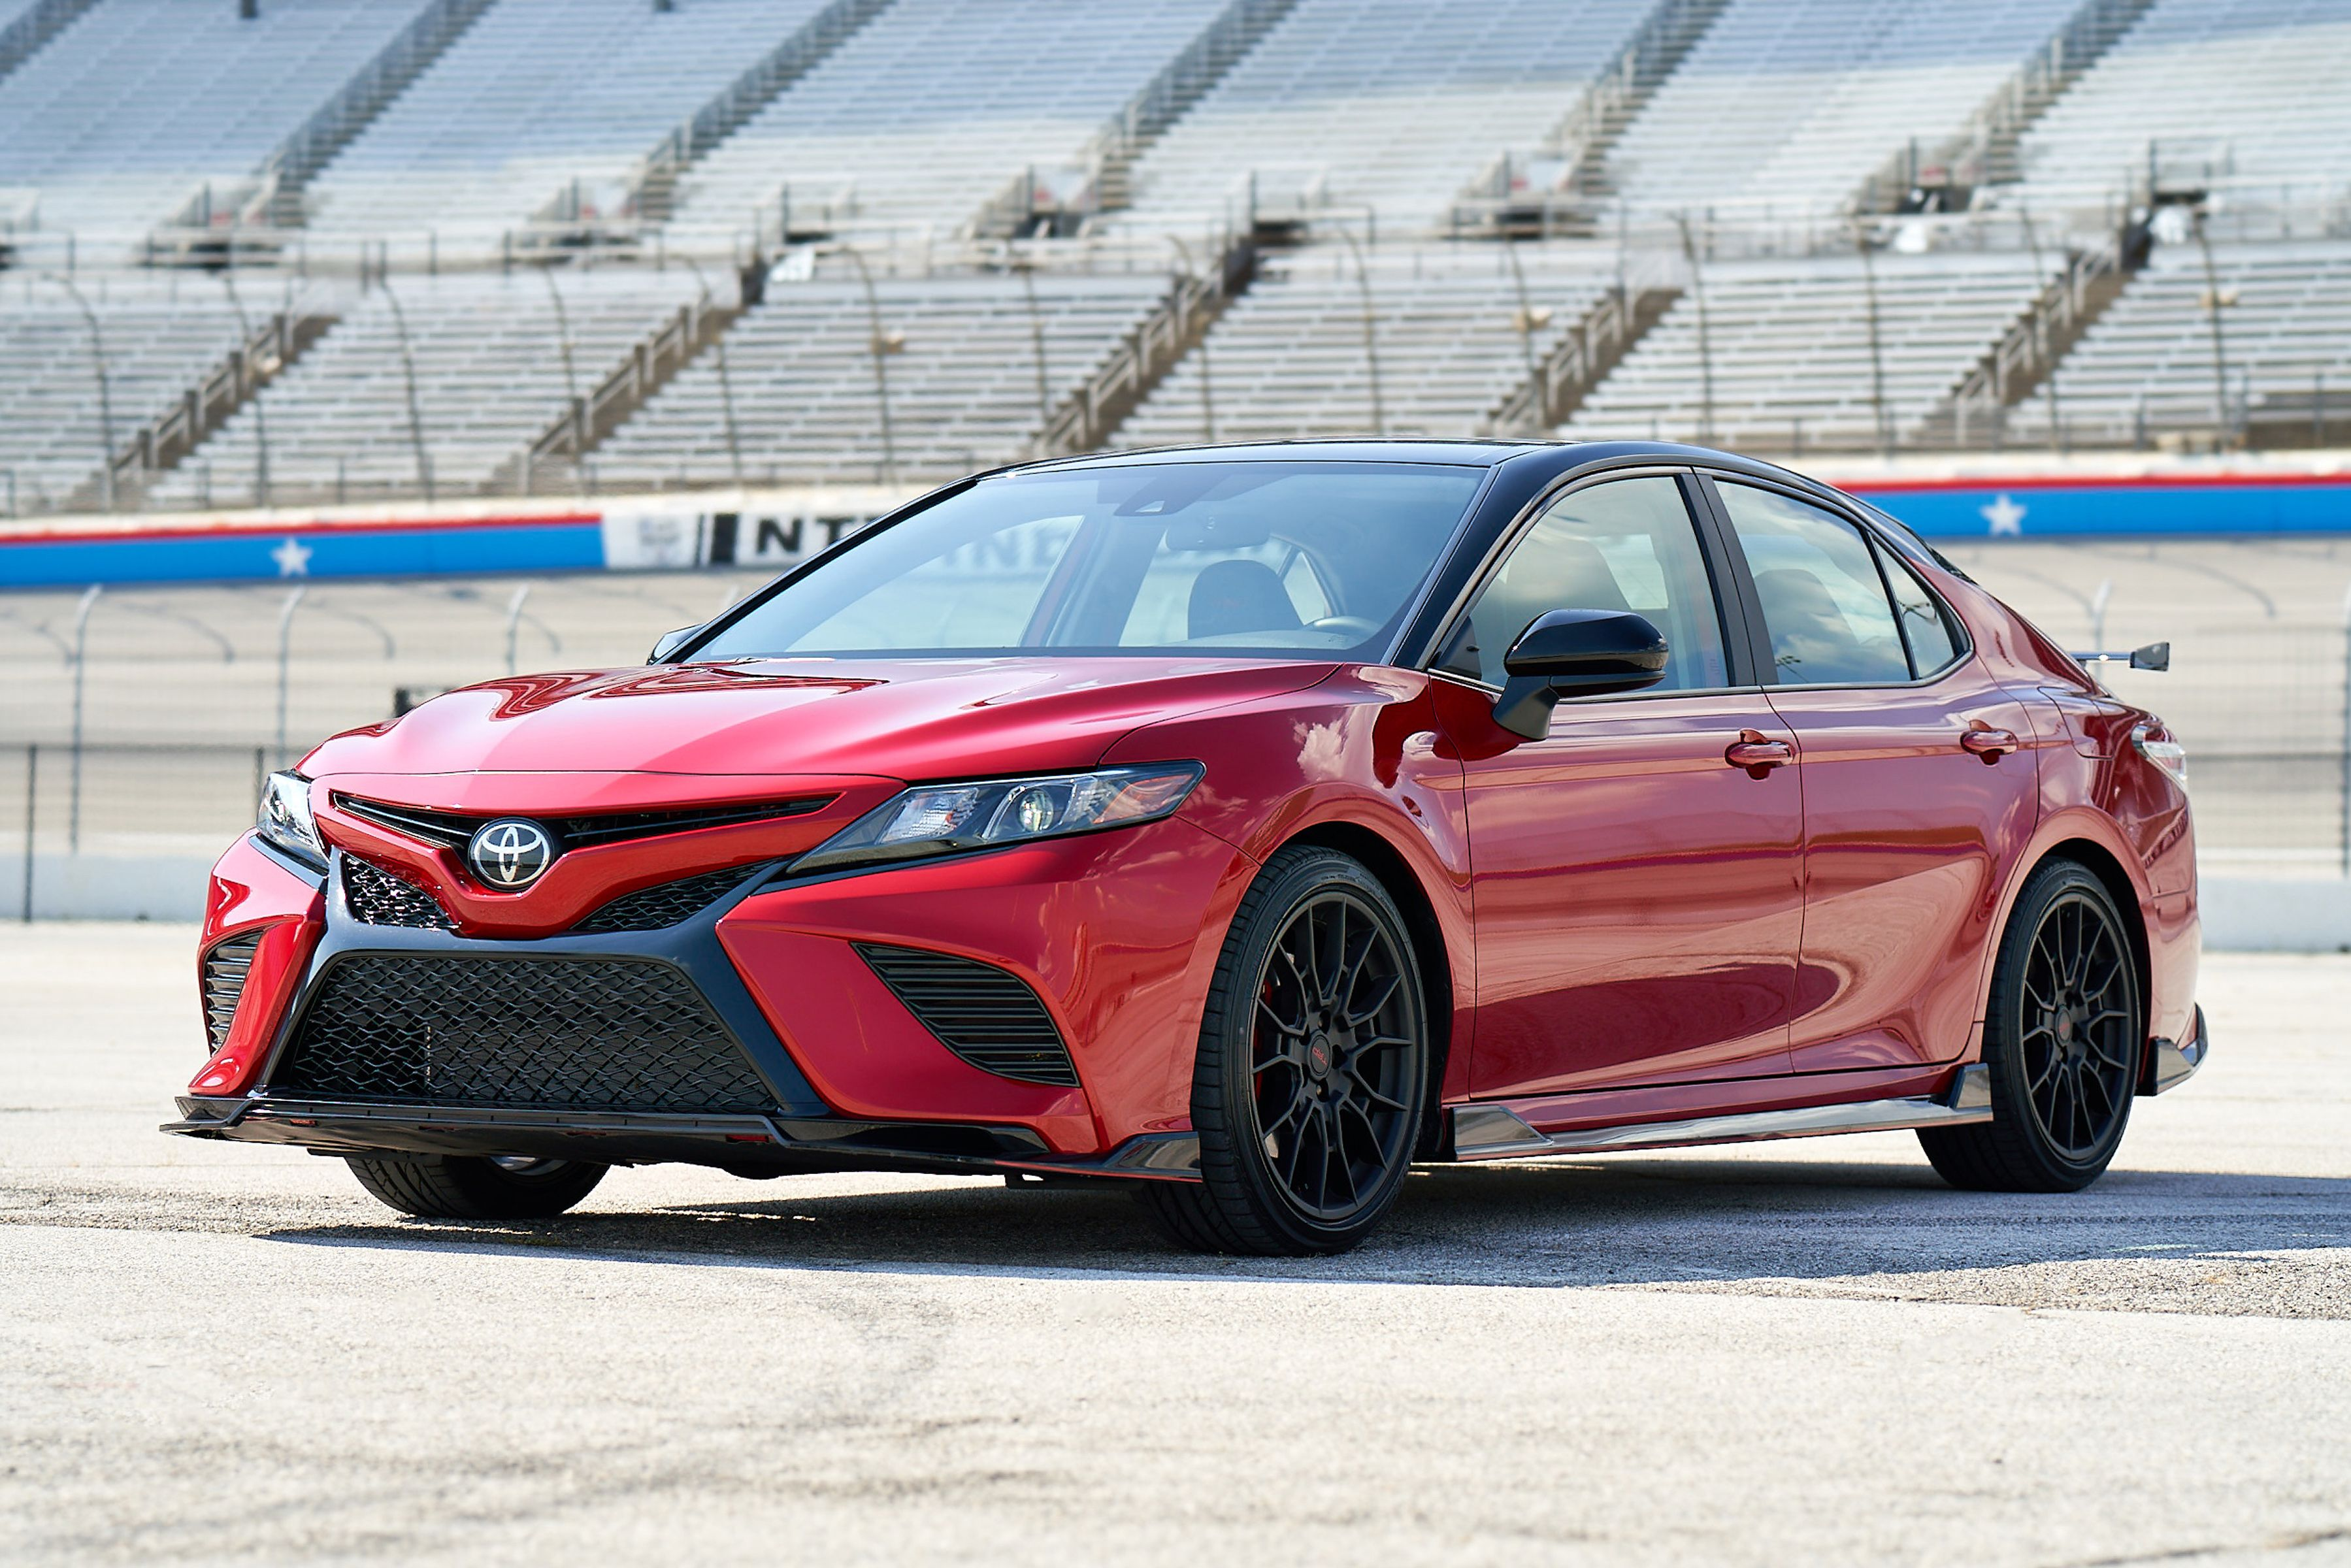 10 Reasons Why The Toyota Camry TRD Is An Awesome Sports Sedan